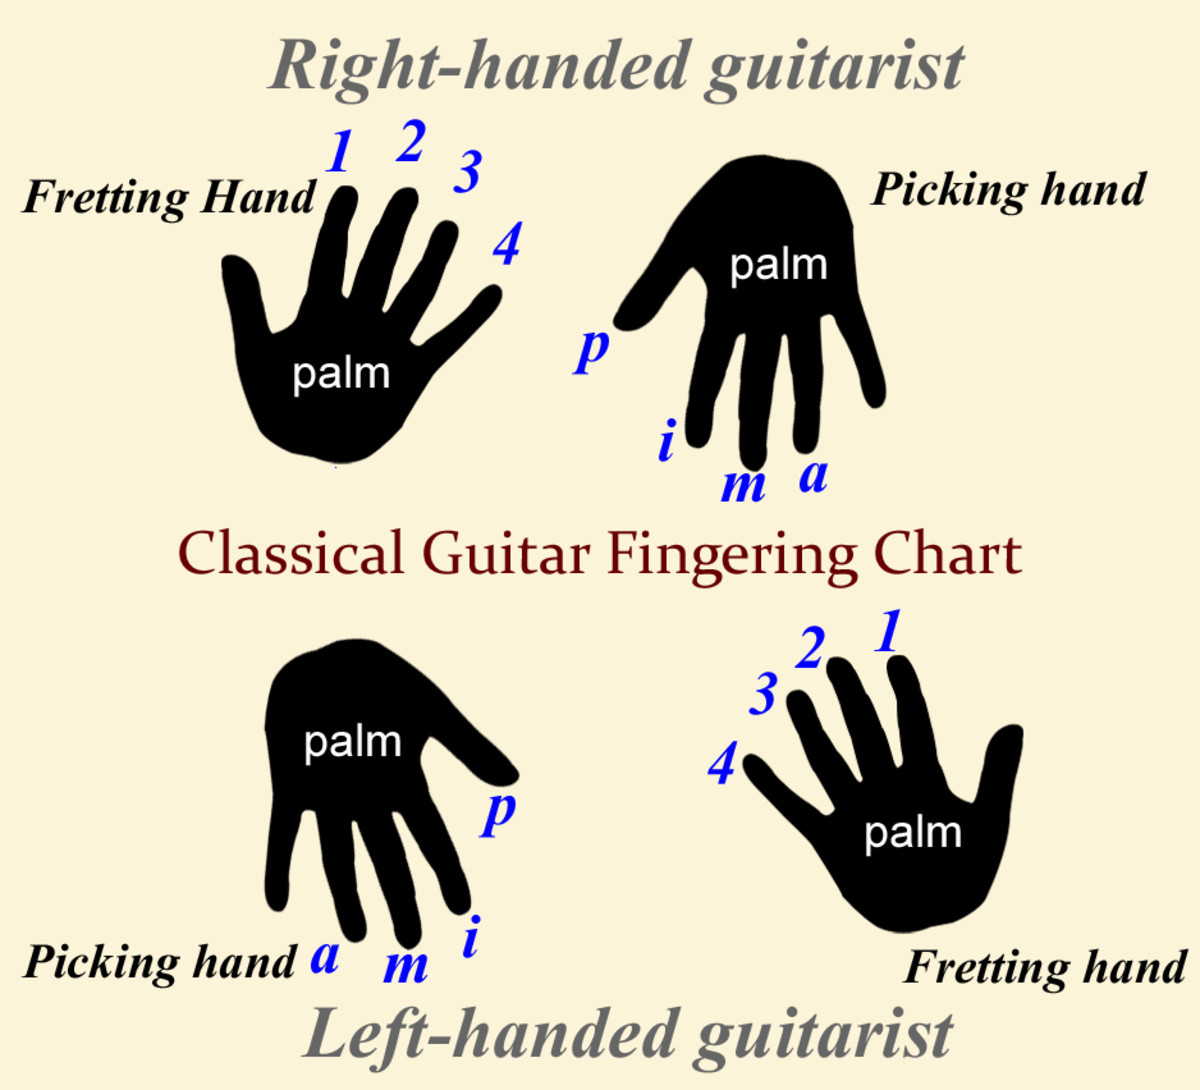 Classical Guitar Fingering